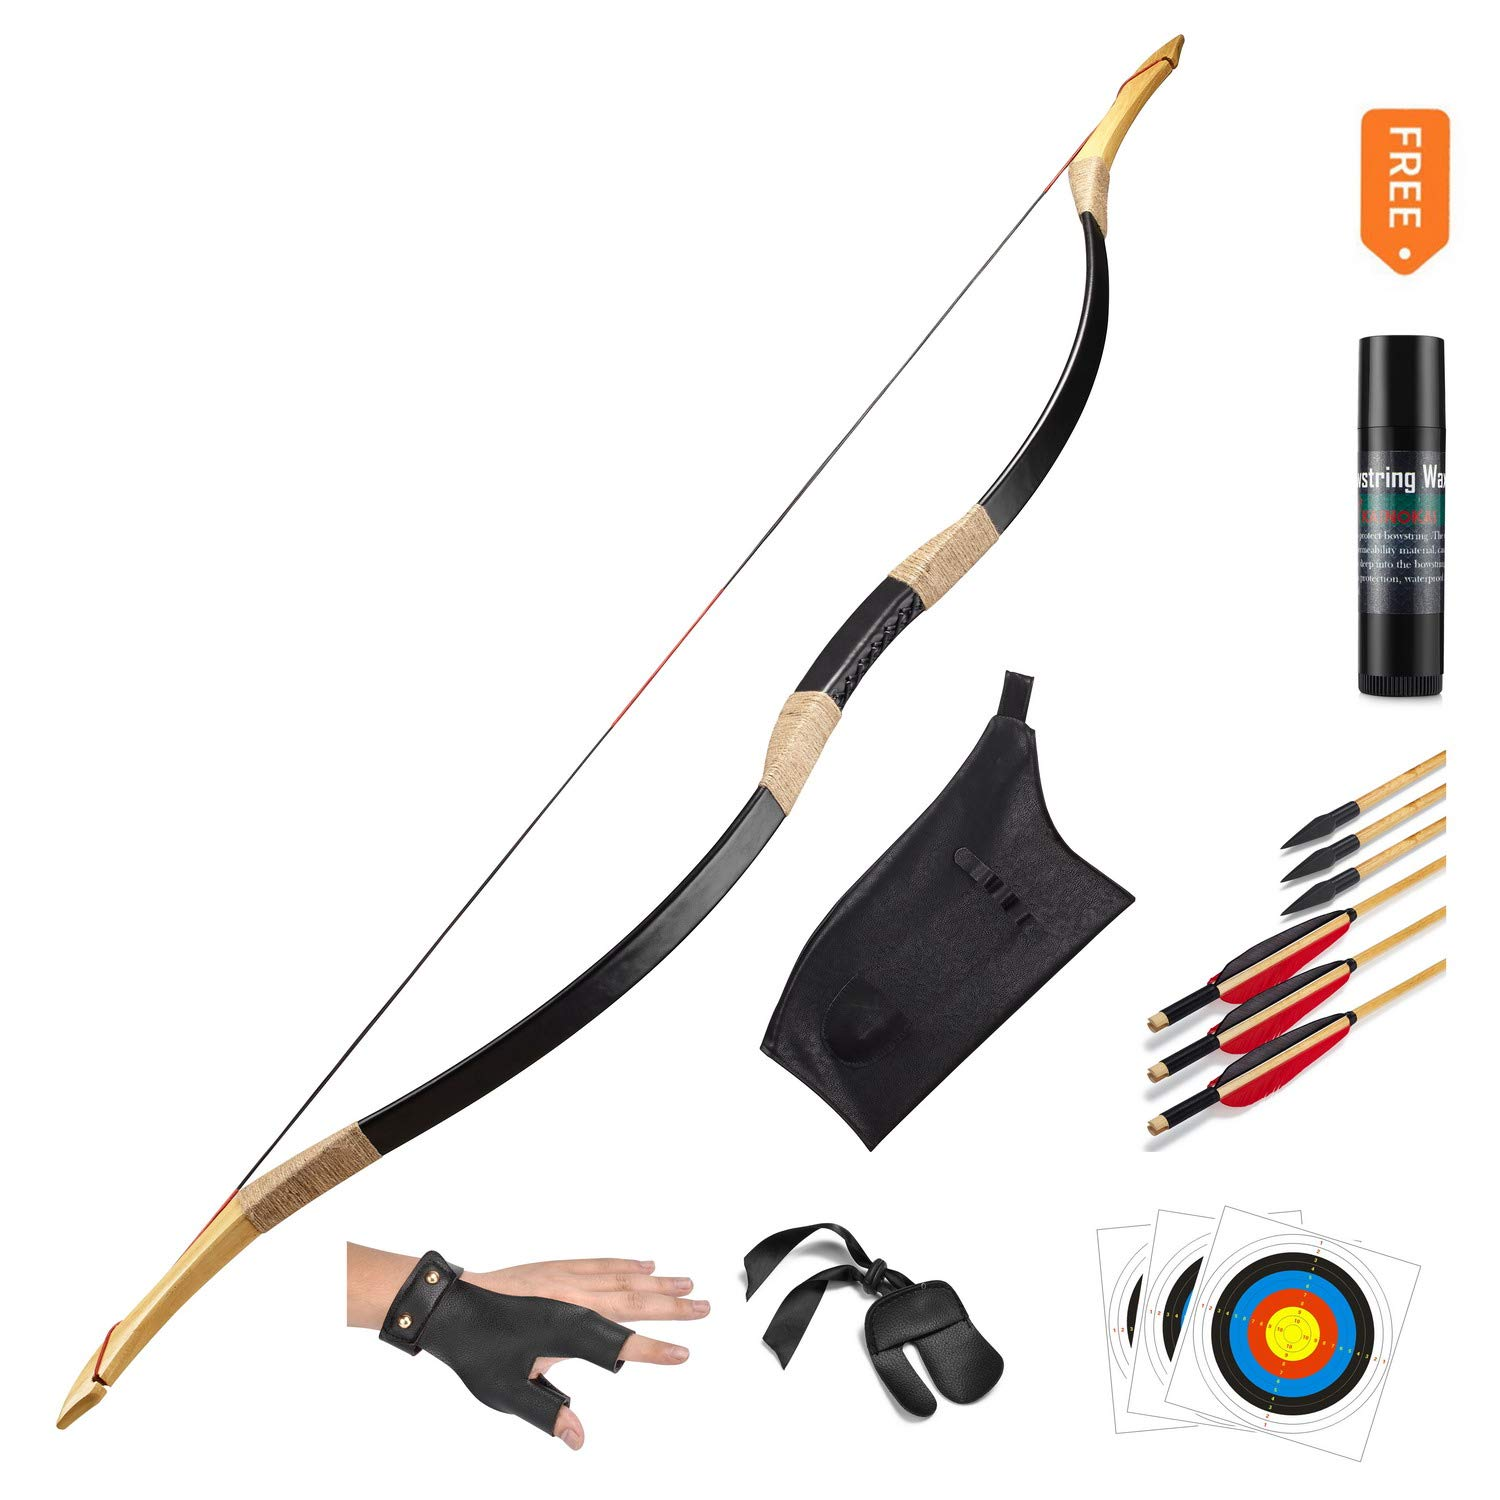 KAINOKAI Traditional Handmade Longbow Horsebow Hunting Recurve Archery Bow Recurve Bow Set (Black Warrior, 25.0 Pounds)